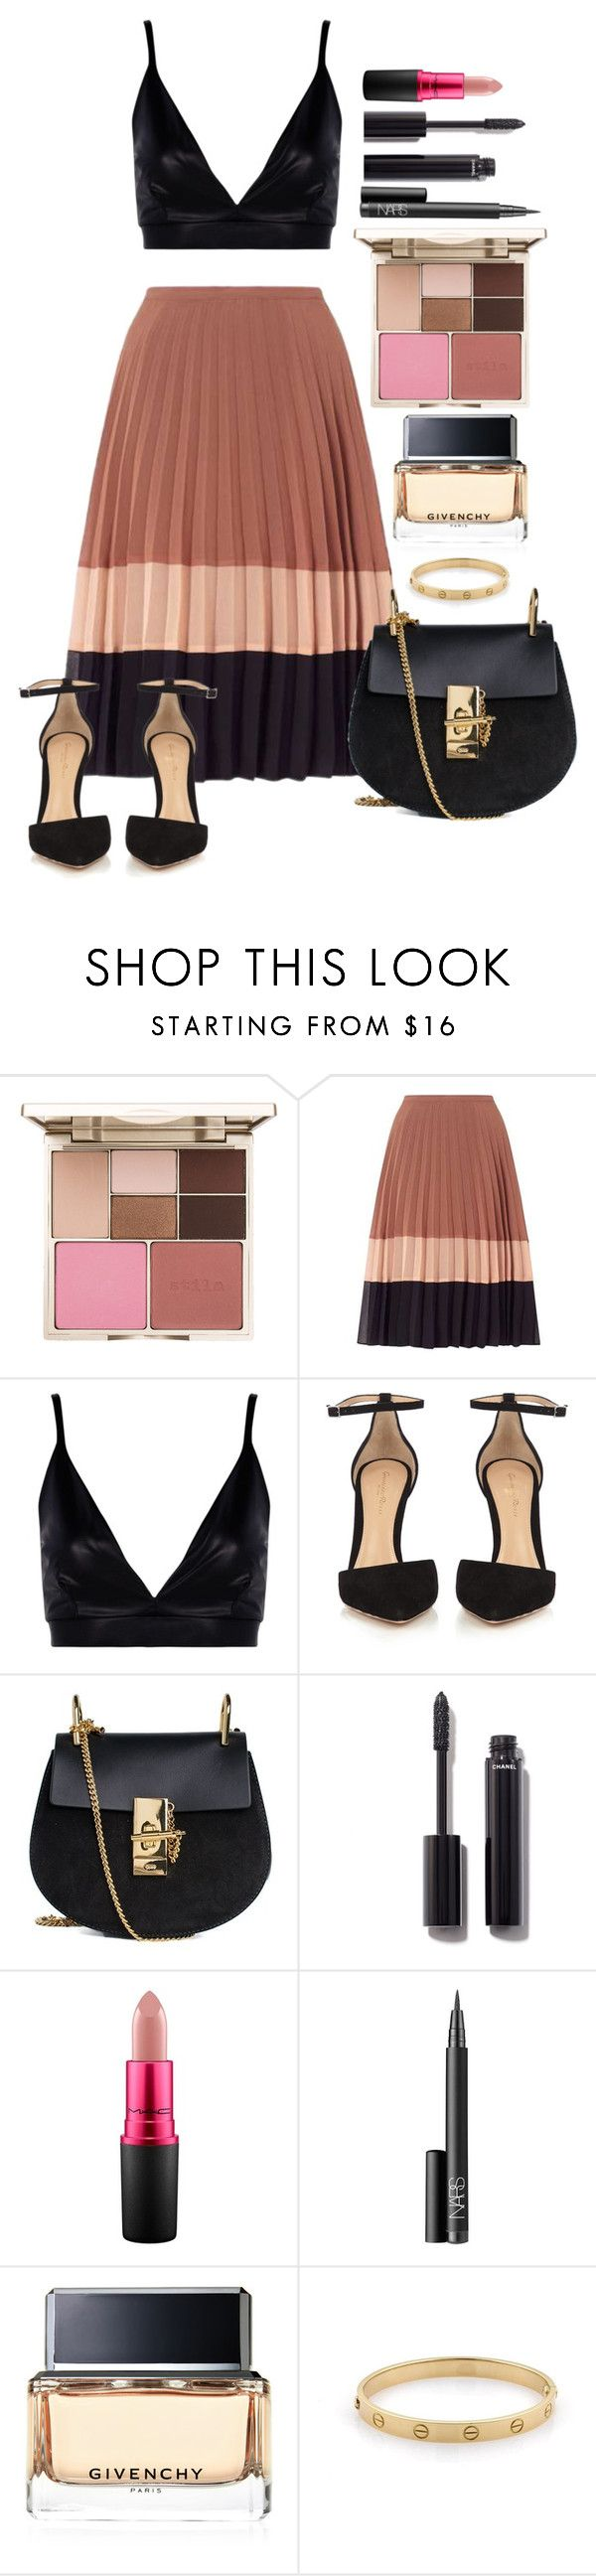 Untitled #1648 by fabianarveloc on Polyvore featuring Stila, Miss Selfridge, Boohoo, Gianvito Rossi, Chloé, Chanel, MAC Cosmetics, NARS Cosmetics, Givenchy and Cartier